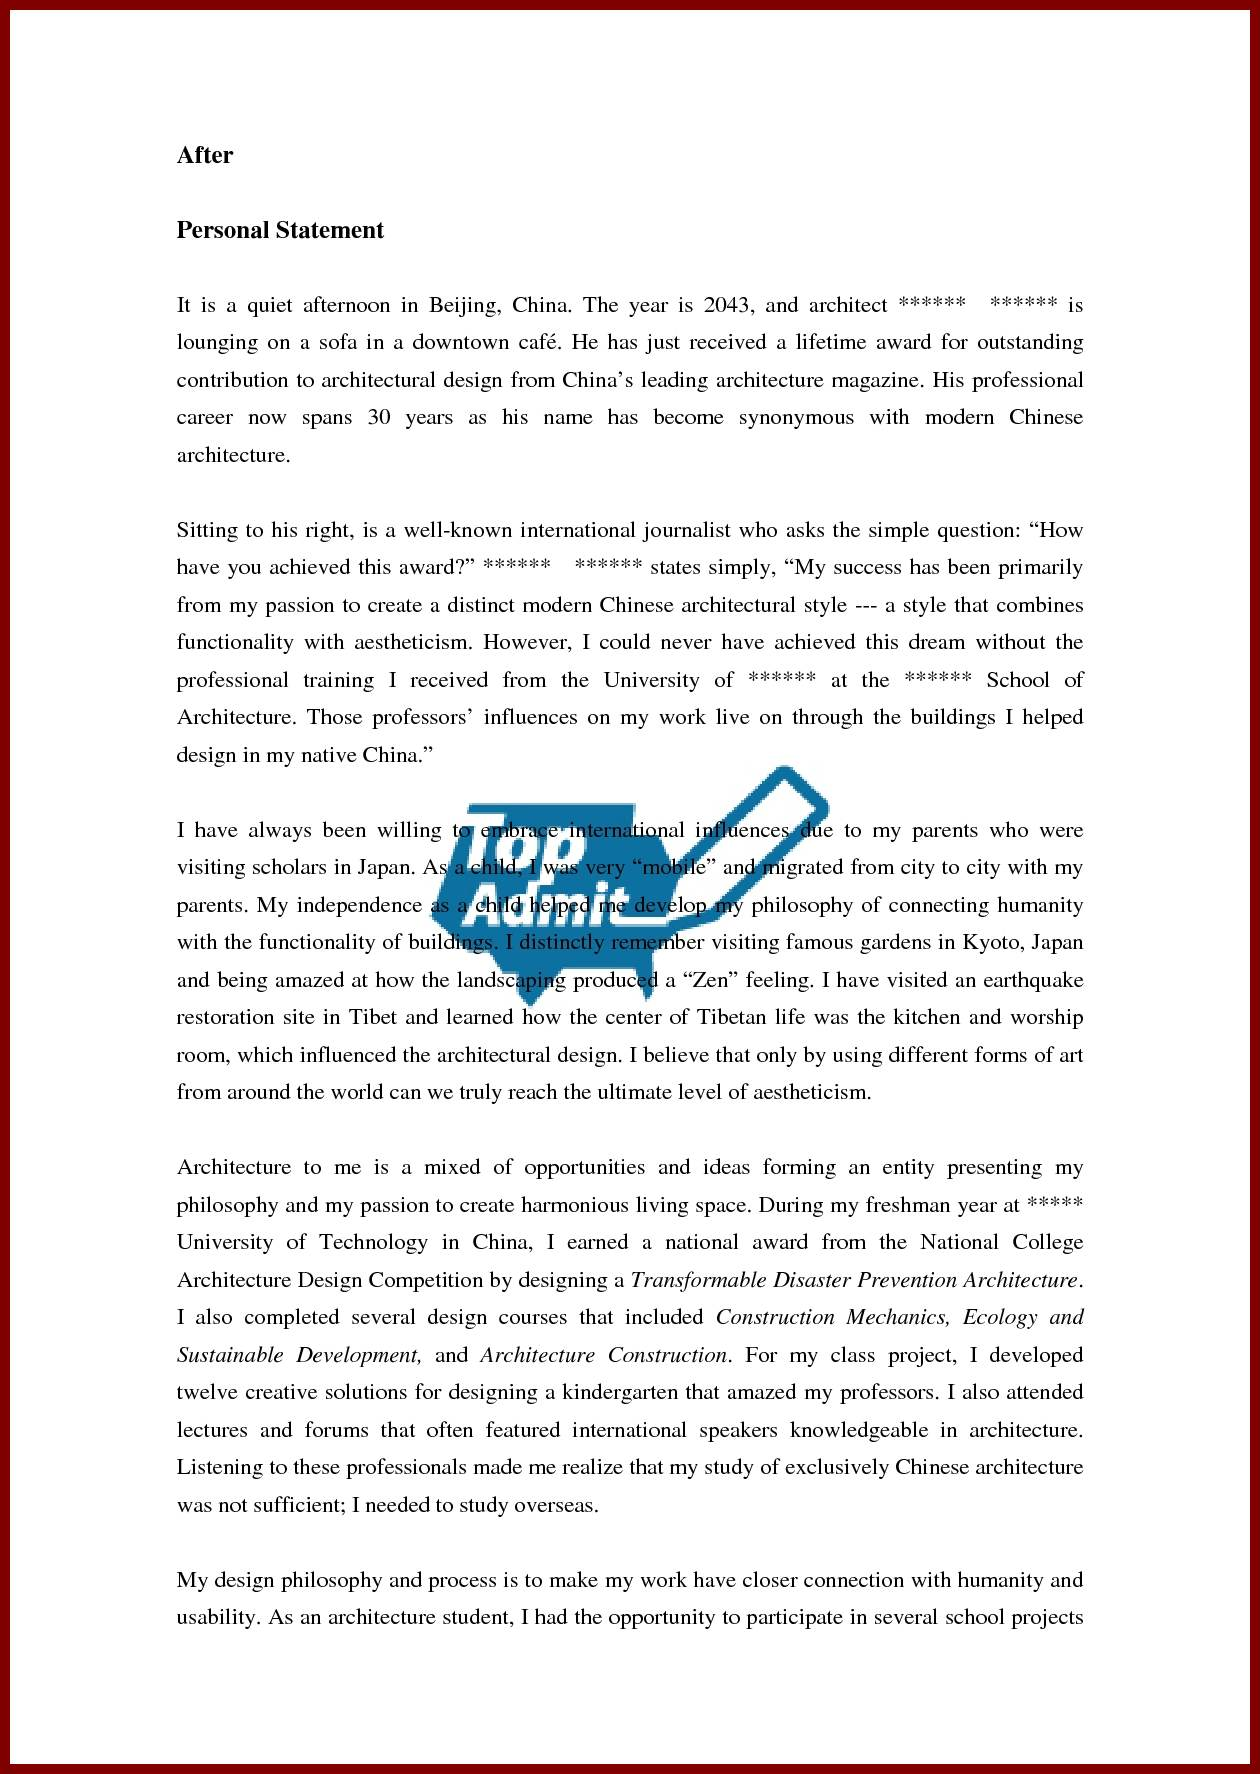 006 Pharmacy Schoolay Examples Usc Supplemental Application Help Entrance Sample Letter For Nursing Admission Zwjgmmd Personal Statement Image Interview Prompts Tips Questions Prompt Sensational Essay Engineering 2017 Full